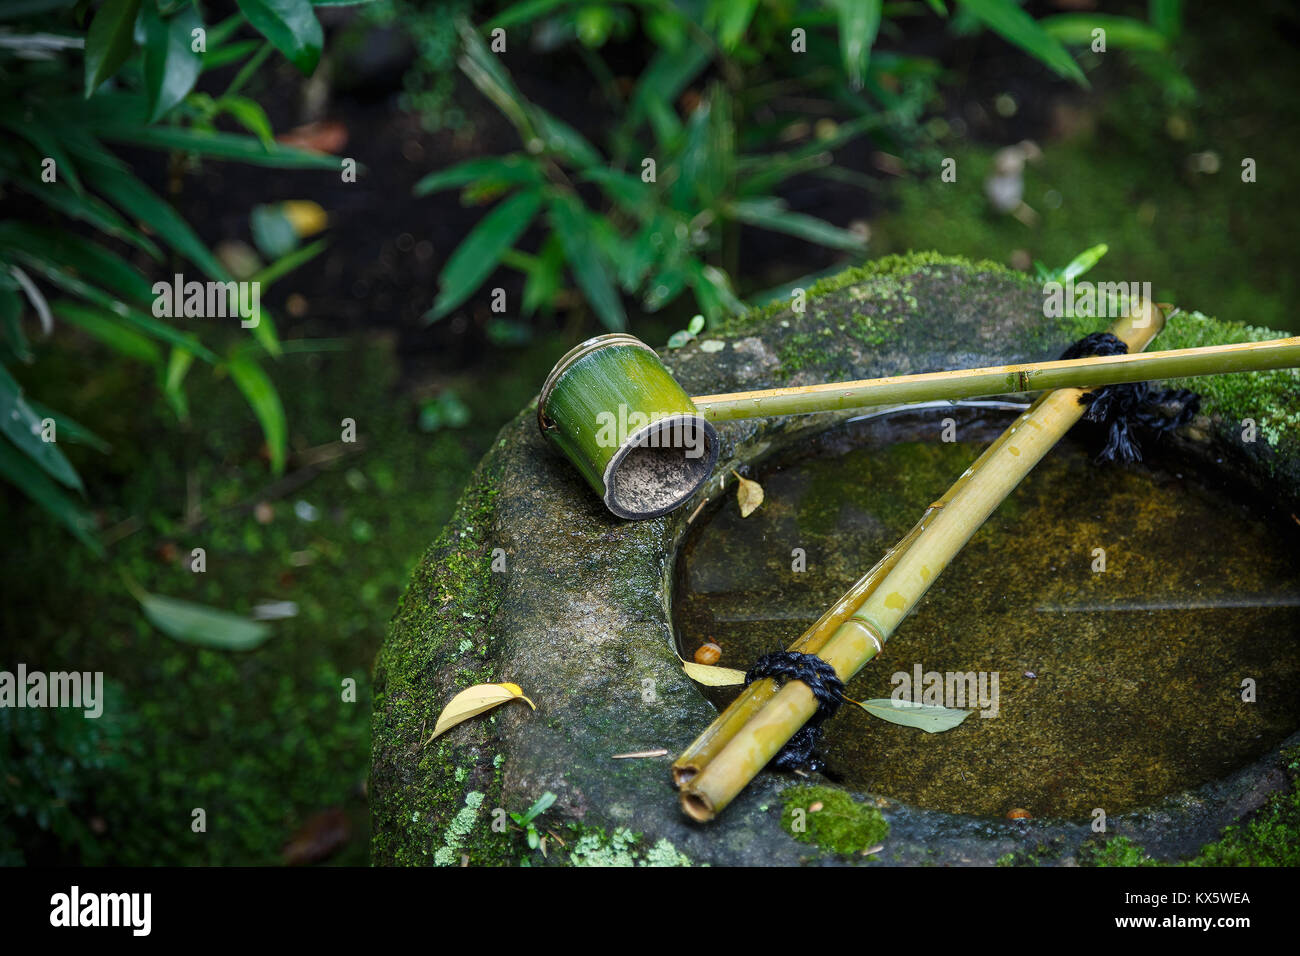 Water dipper on a stone basin at Koto-in Temple in Kyoto, Japan  KYOTO, JAPAN - OCTOBER 22: Koto-in Temple in Kyoto, - Stock Image